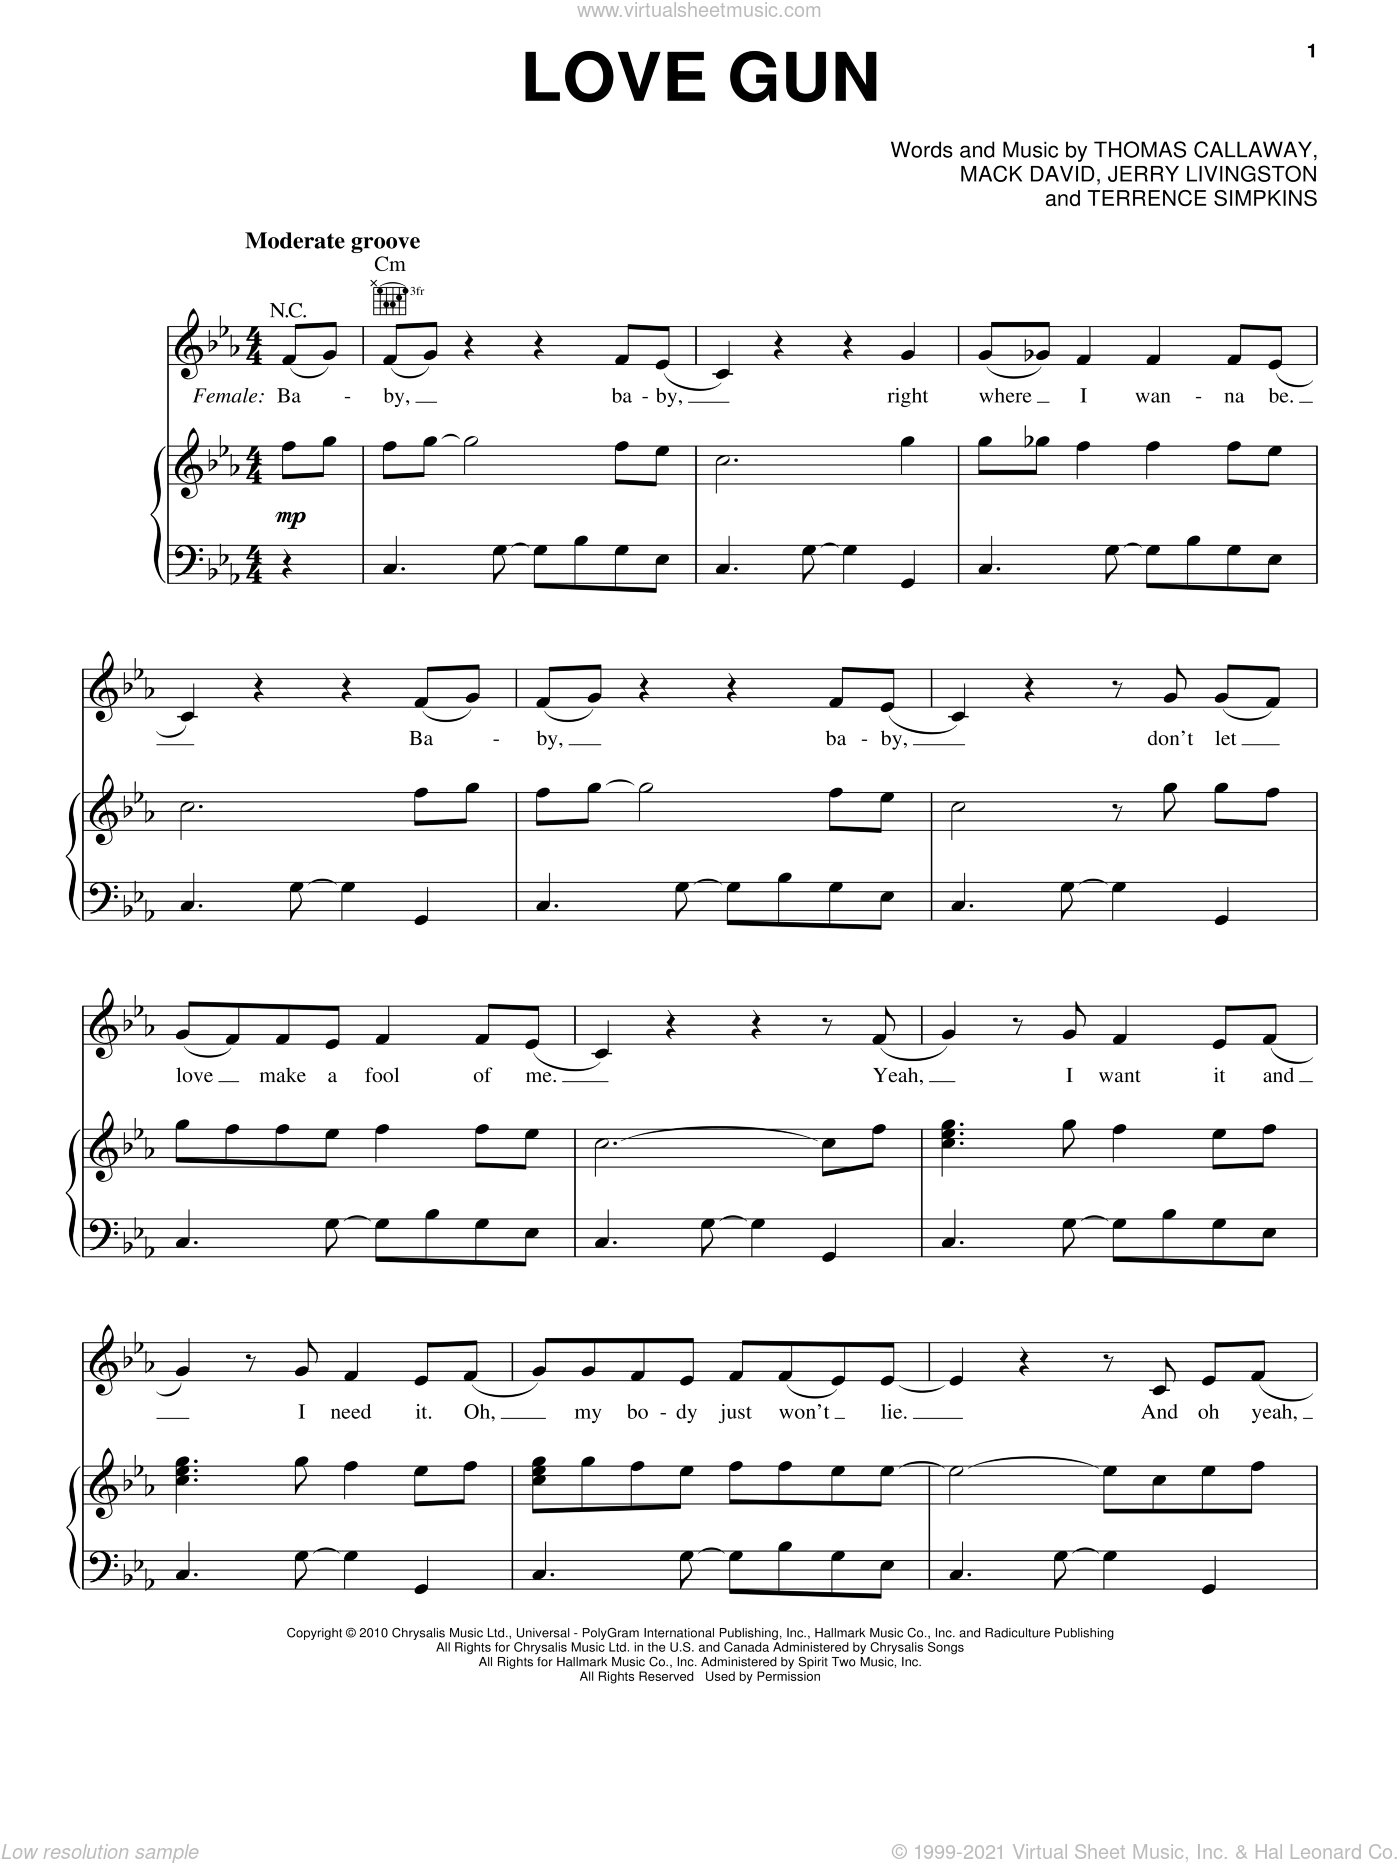 Love Gun sheet music for voice, piano or guitar by Thomas Callaway, Cee Lo Green, Jerry Livingston and Mack David. Score Image Preview.